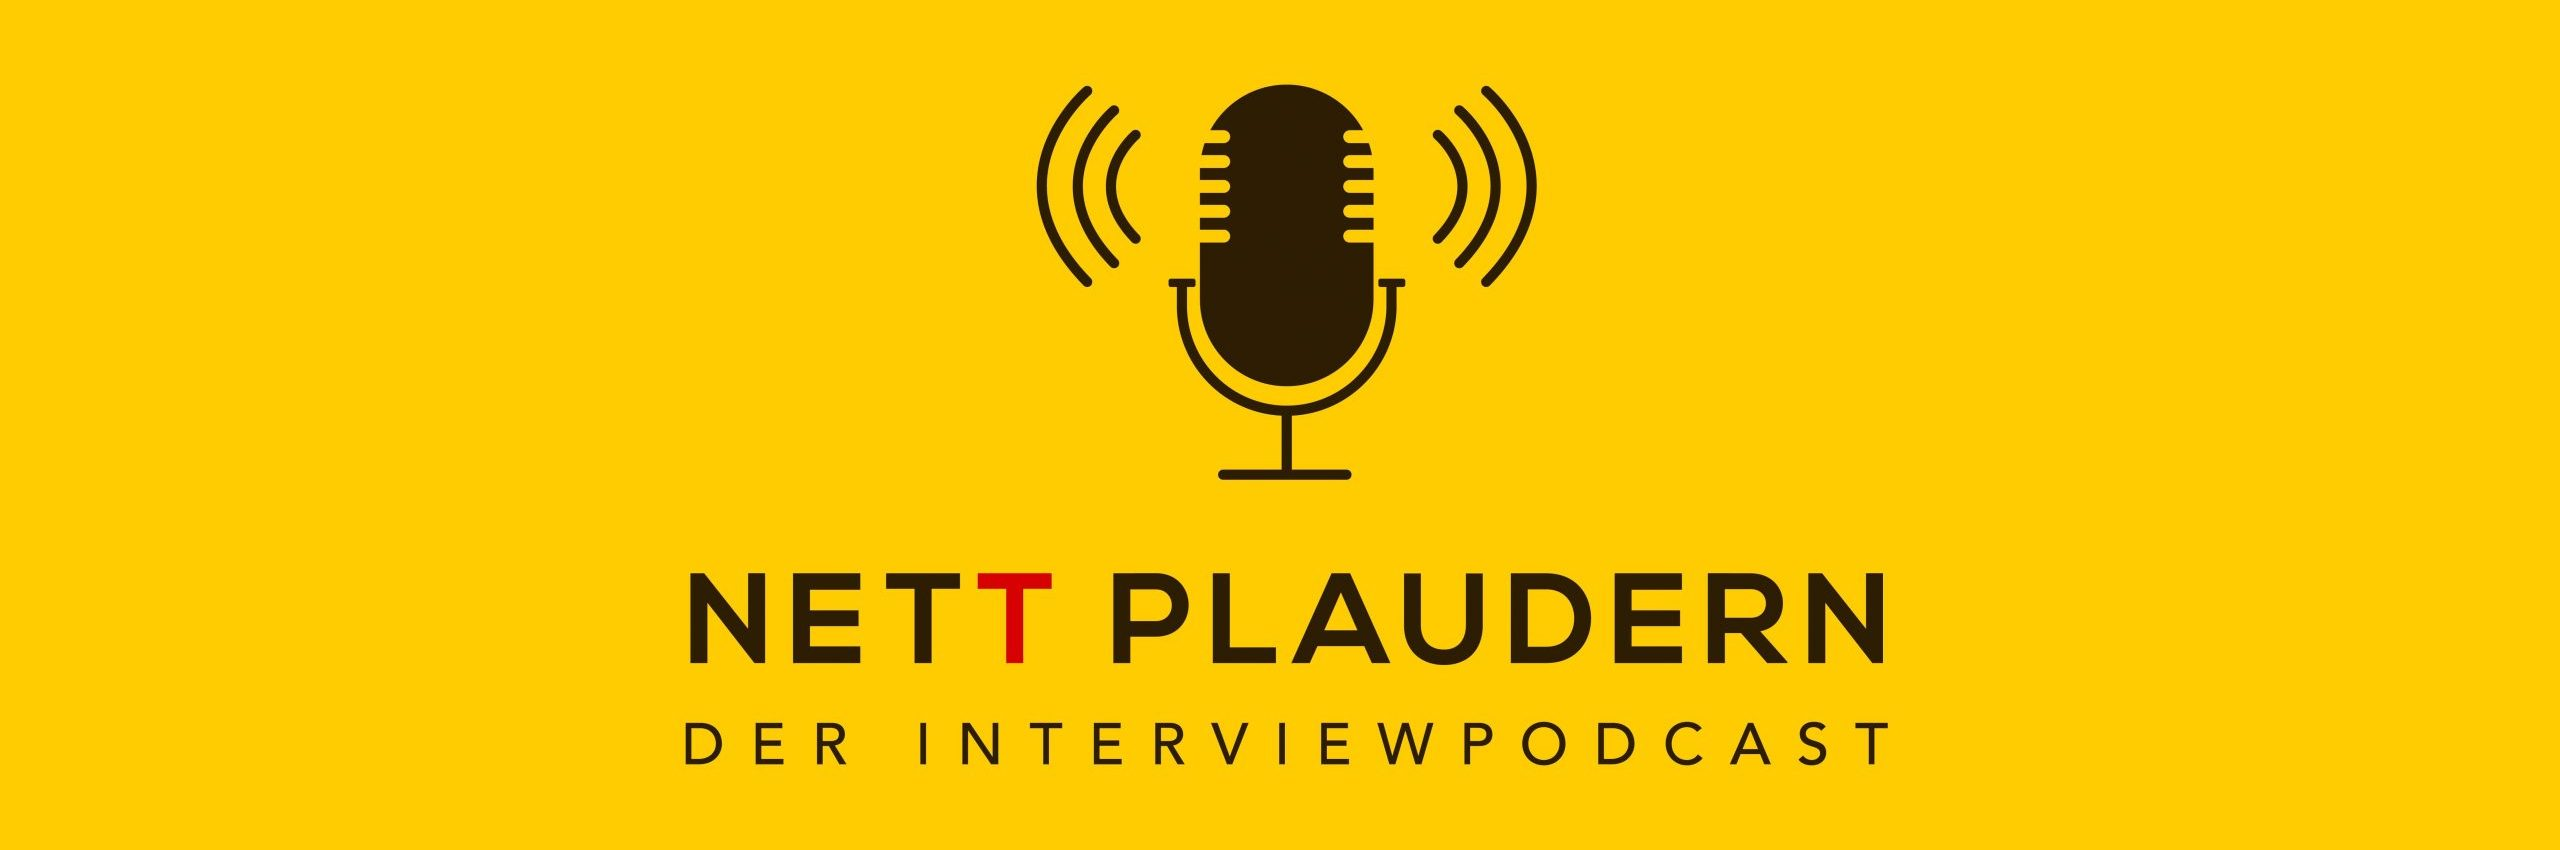 Logo for nett plaudern